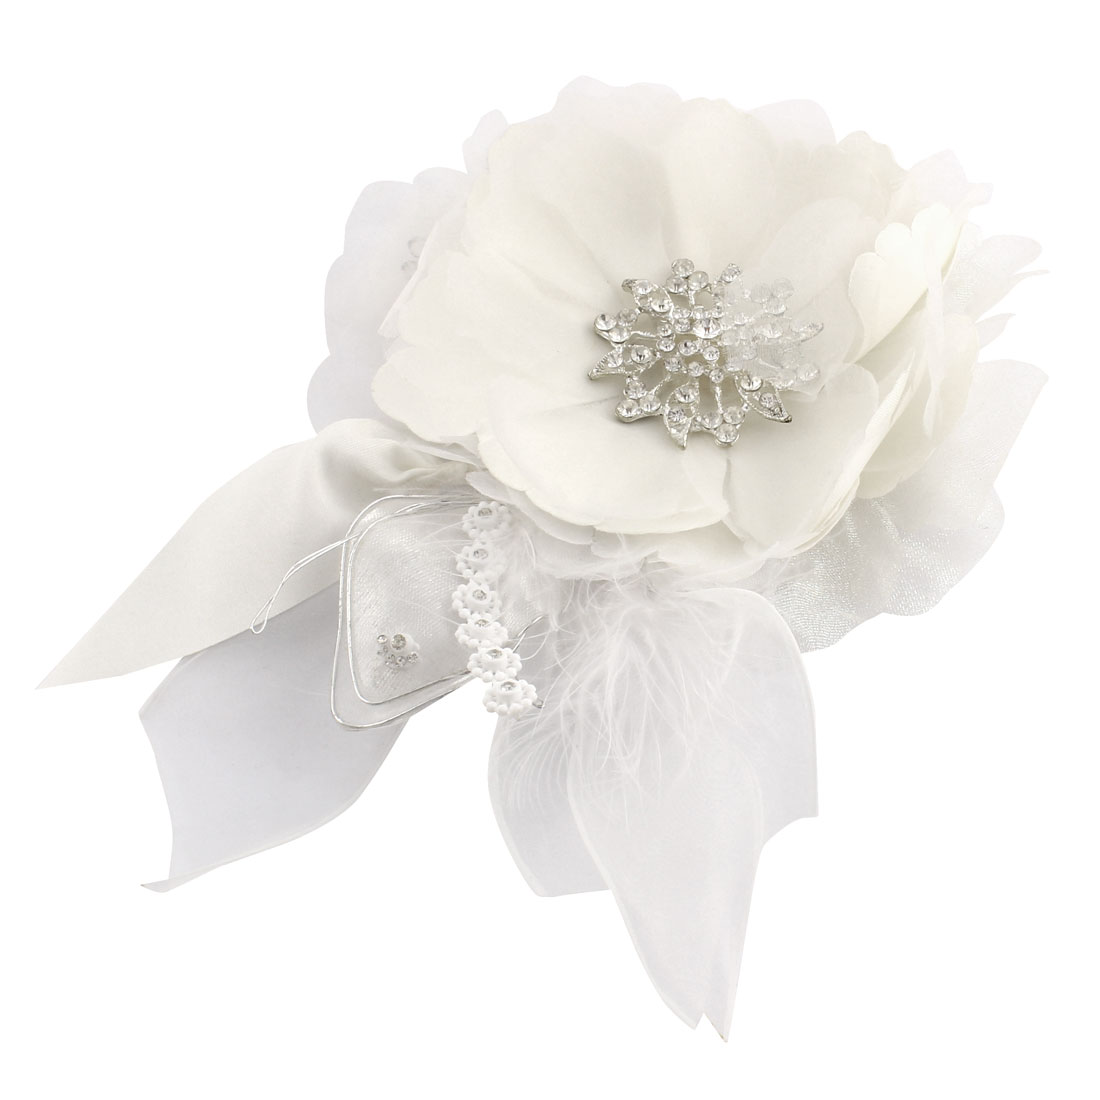 Lady Feather Faux Rhinestone Detail Full Dress Corsage Ivory Color